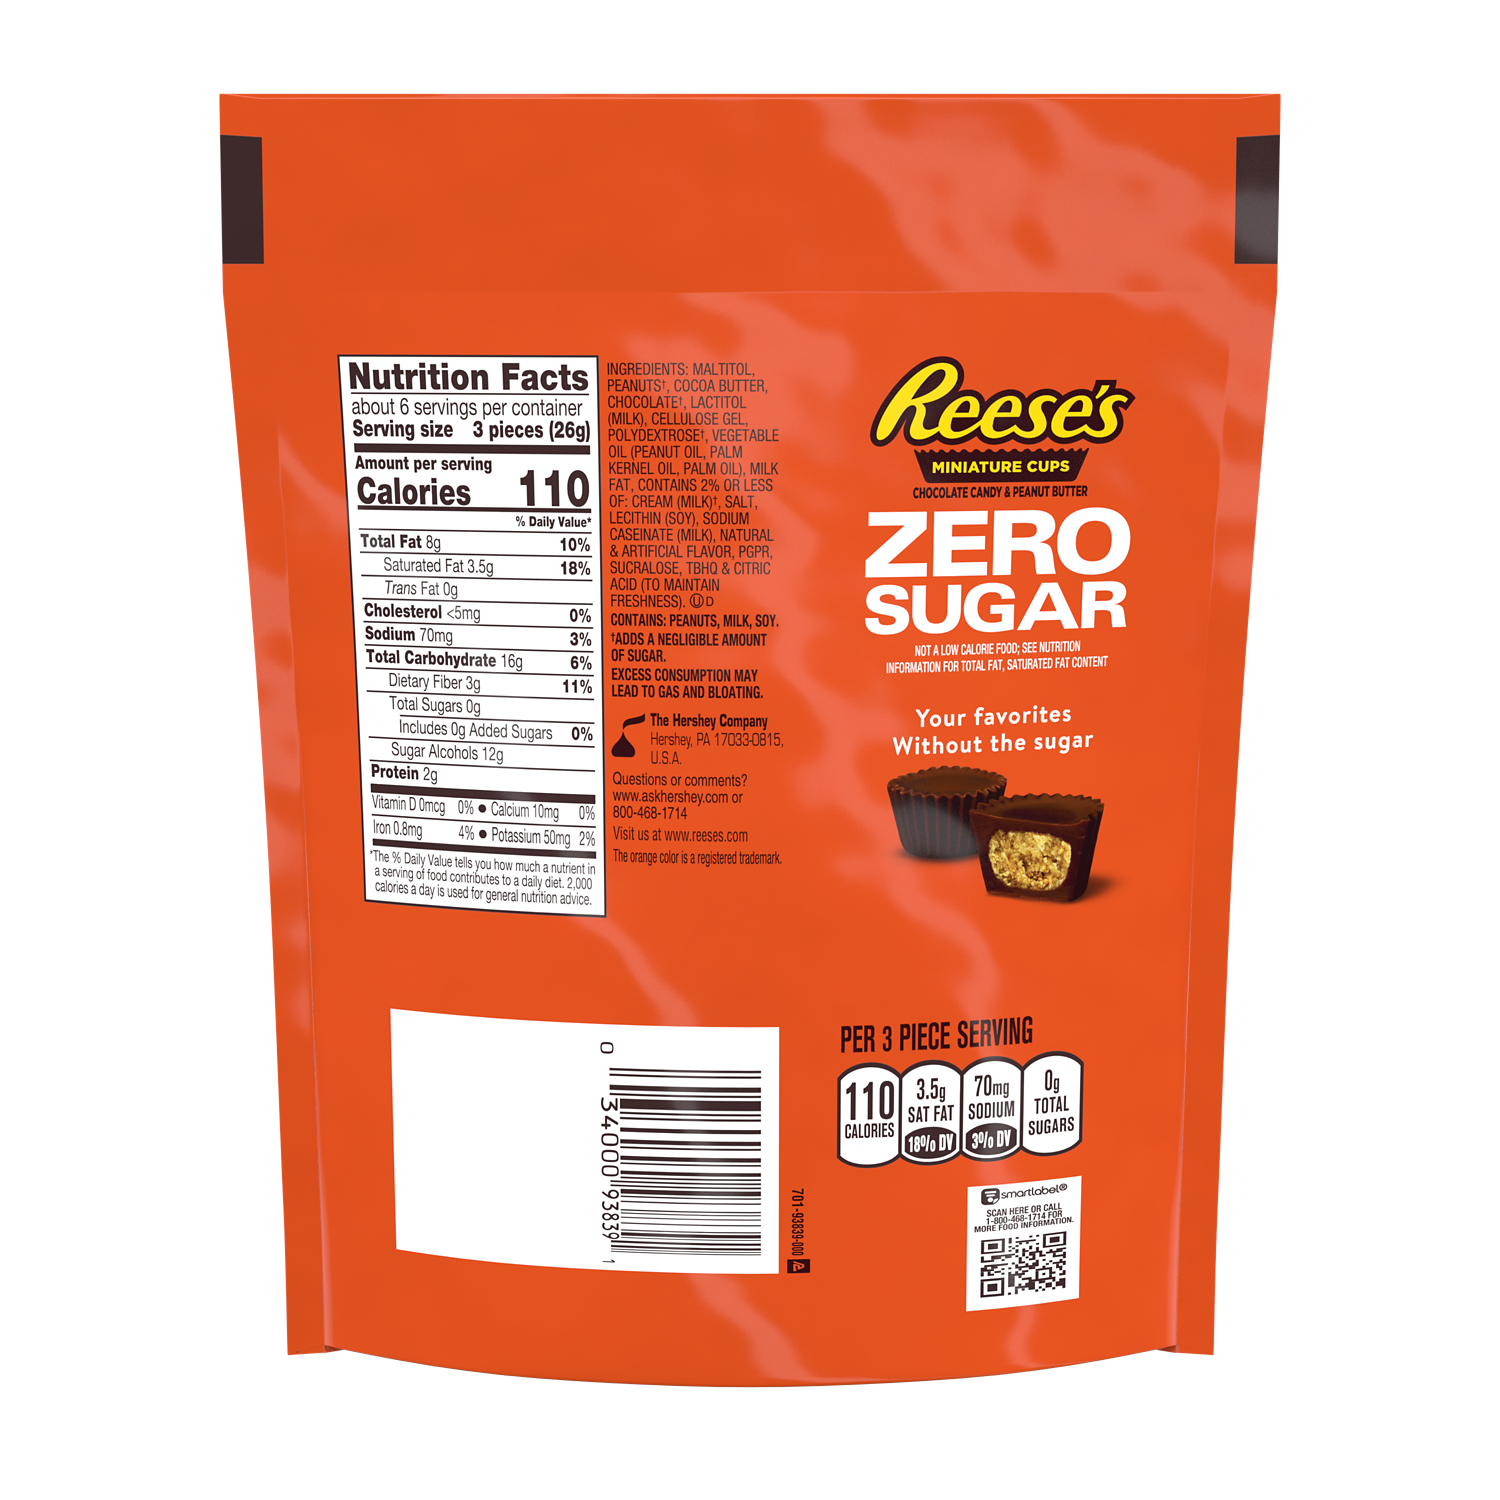 REESE'S Zero Sugar Miniatures Chocolate Candy Peanut Butter Cups, 5.1 oz bag - Back of Package